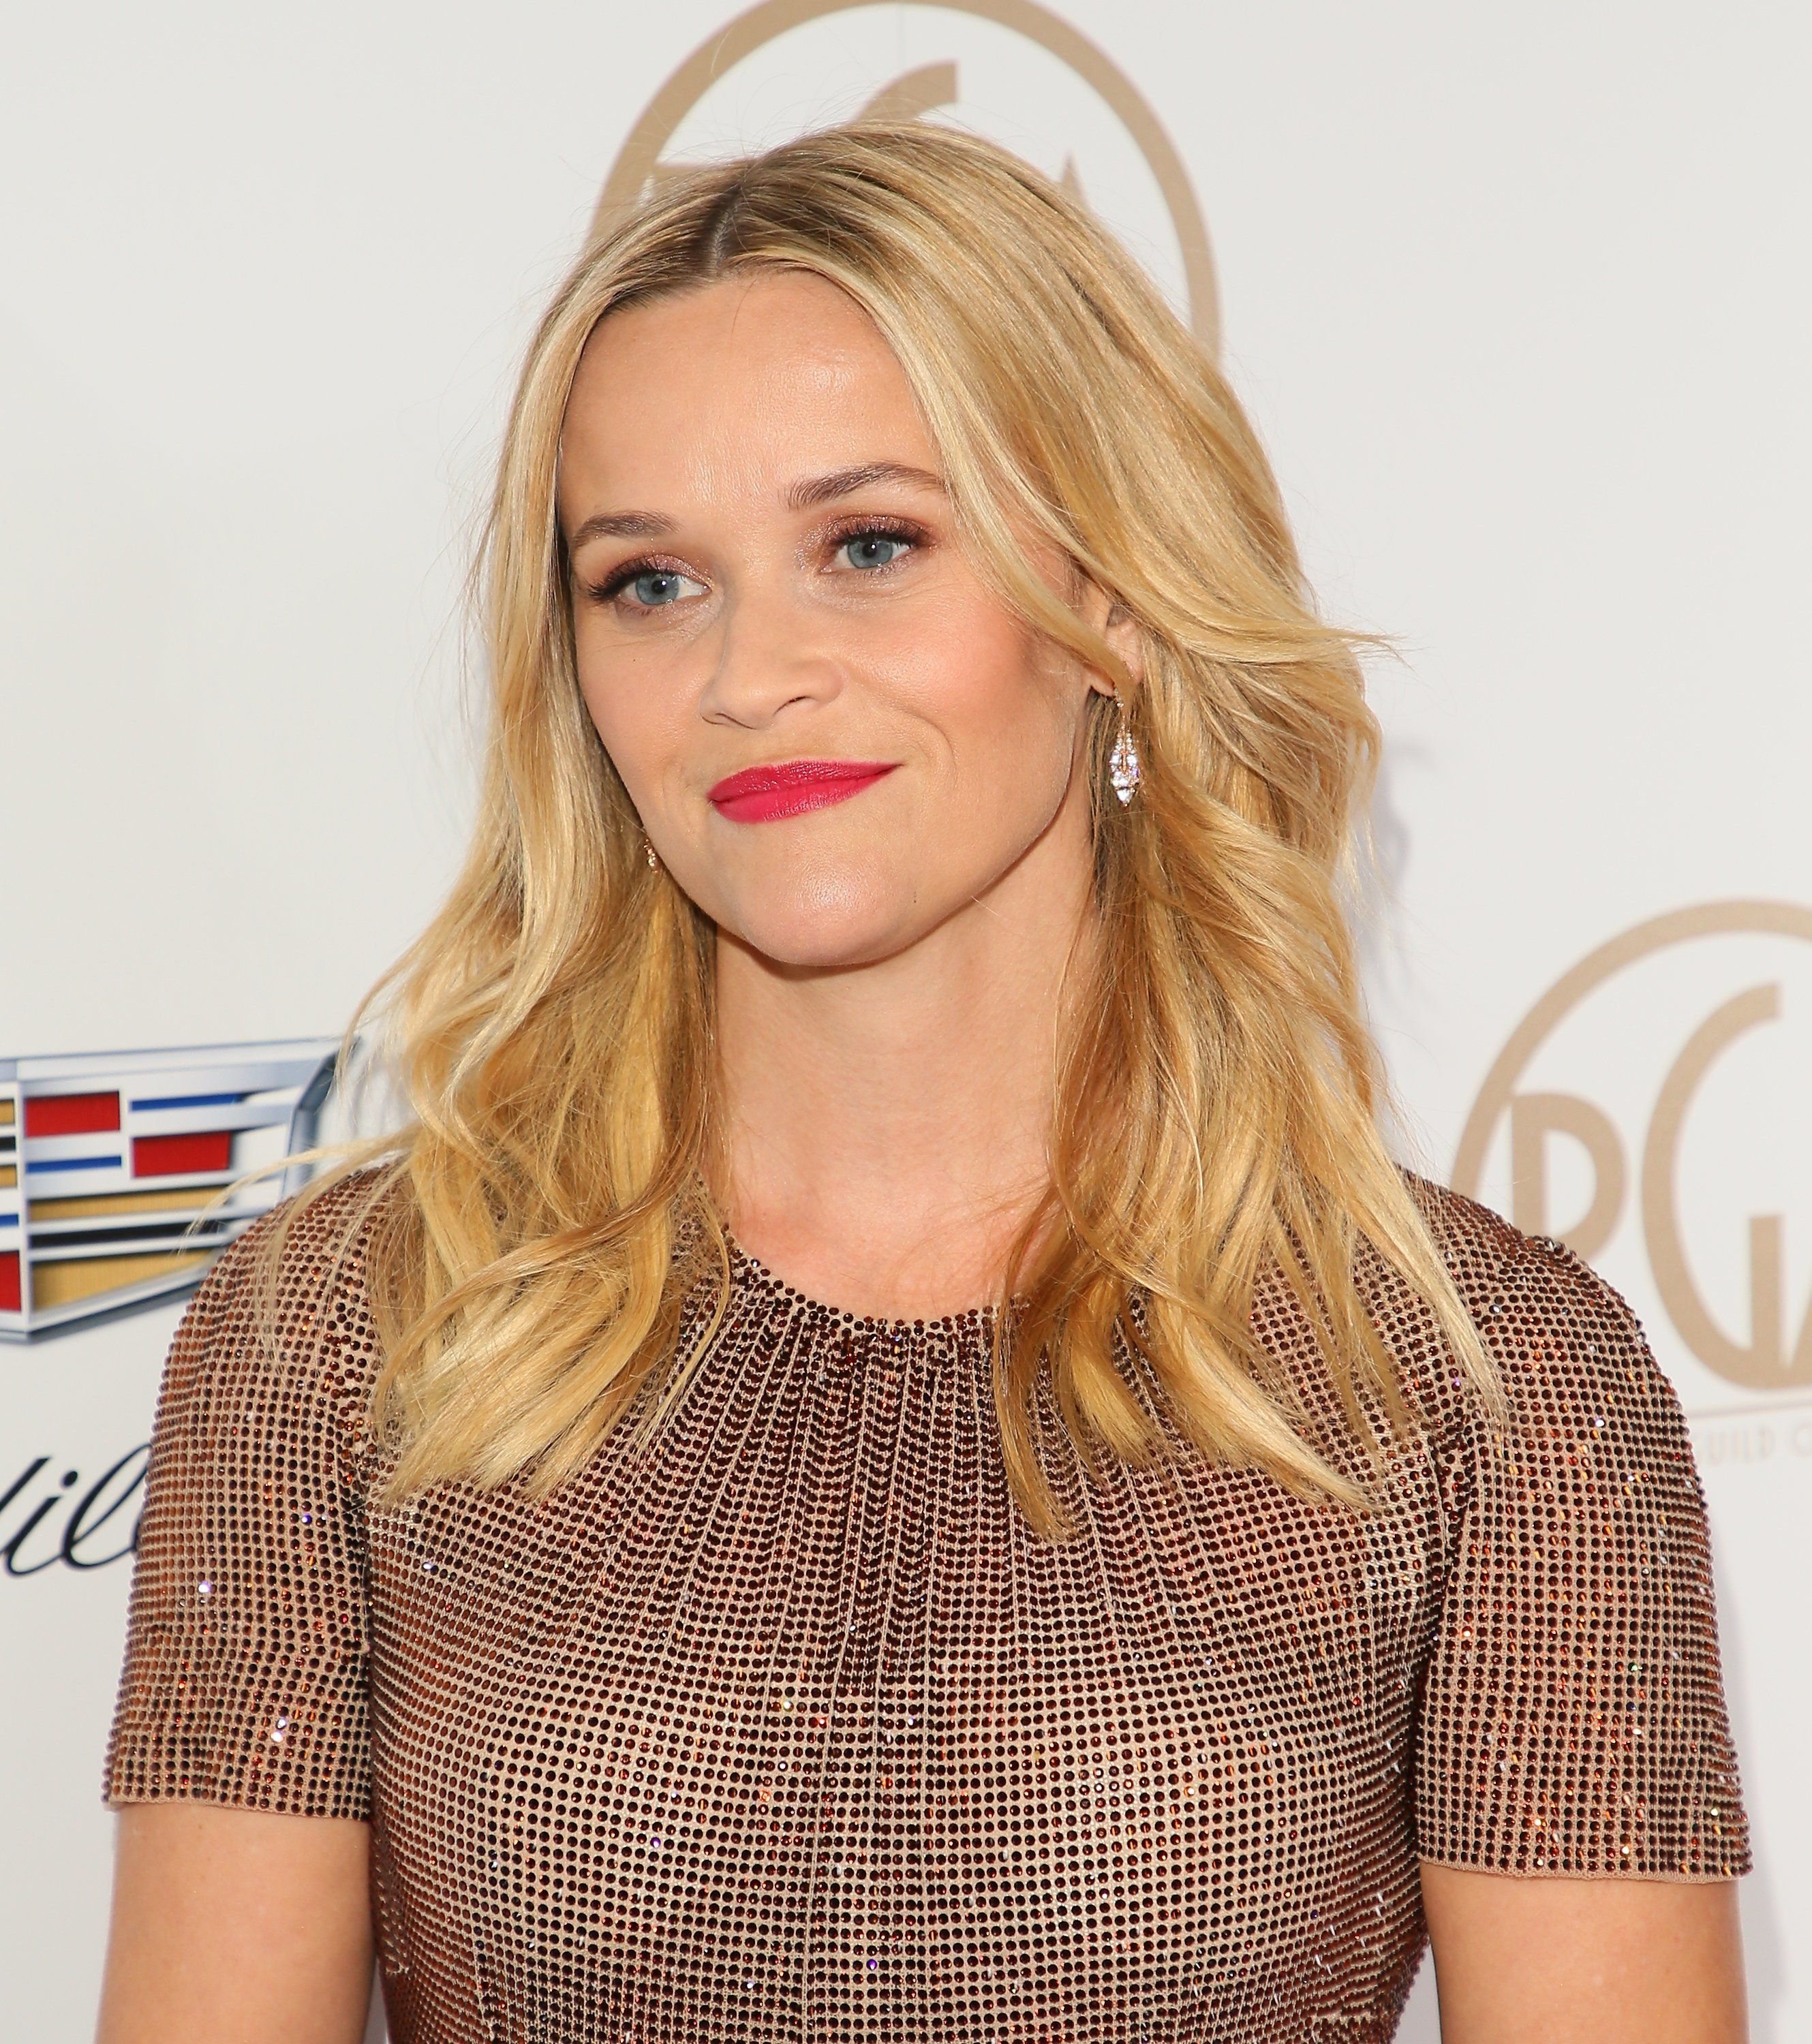 Reese Witherspoon reveals how an abusive relationship changed her